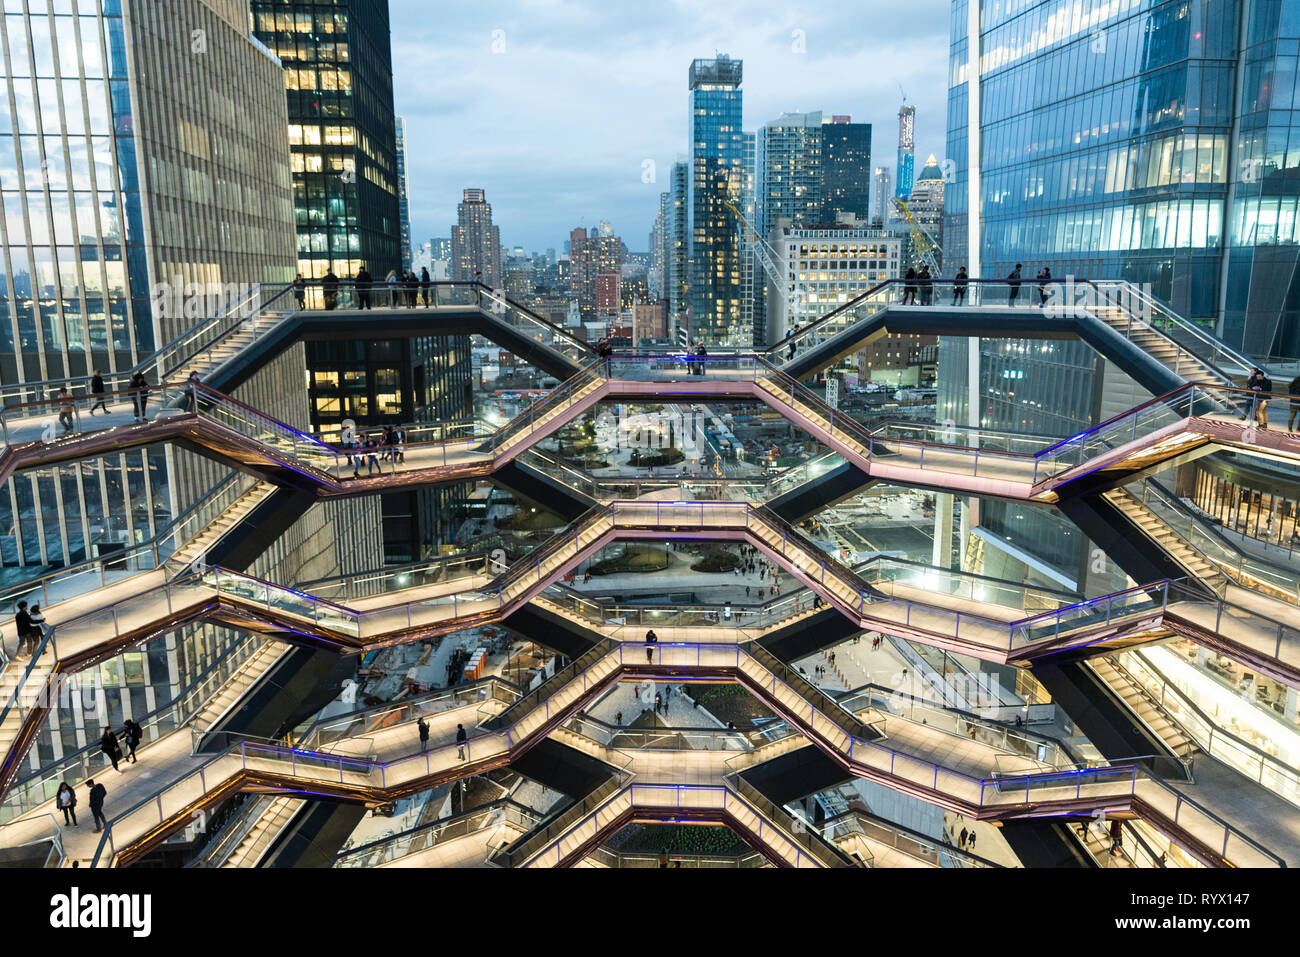 New York, NY - March 15 2019: The Vessel Building in Hudson Yards Manhattan Opened to vistors to see the inside of it's abstract shapes. There are end Stock Photo